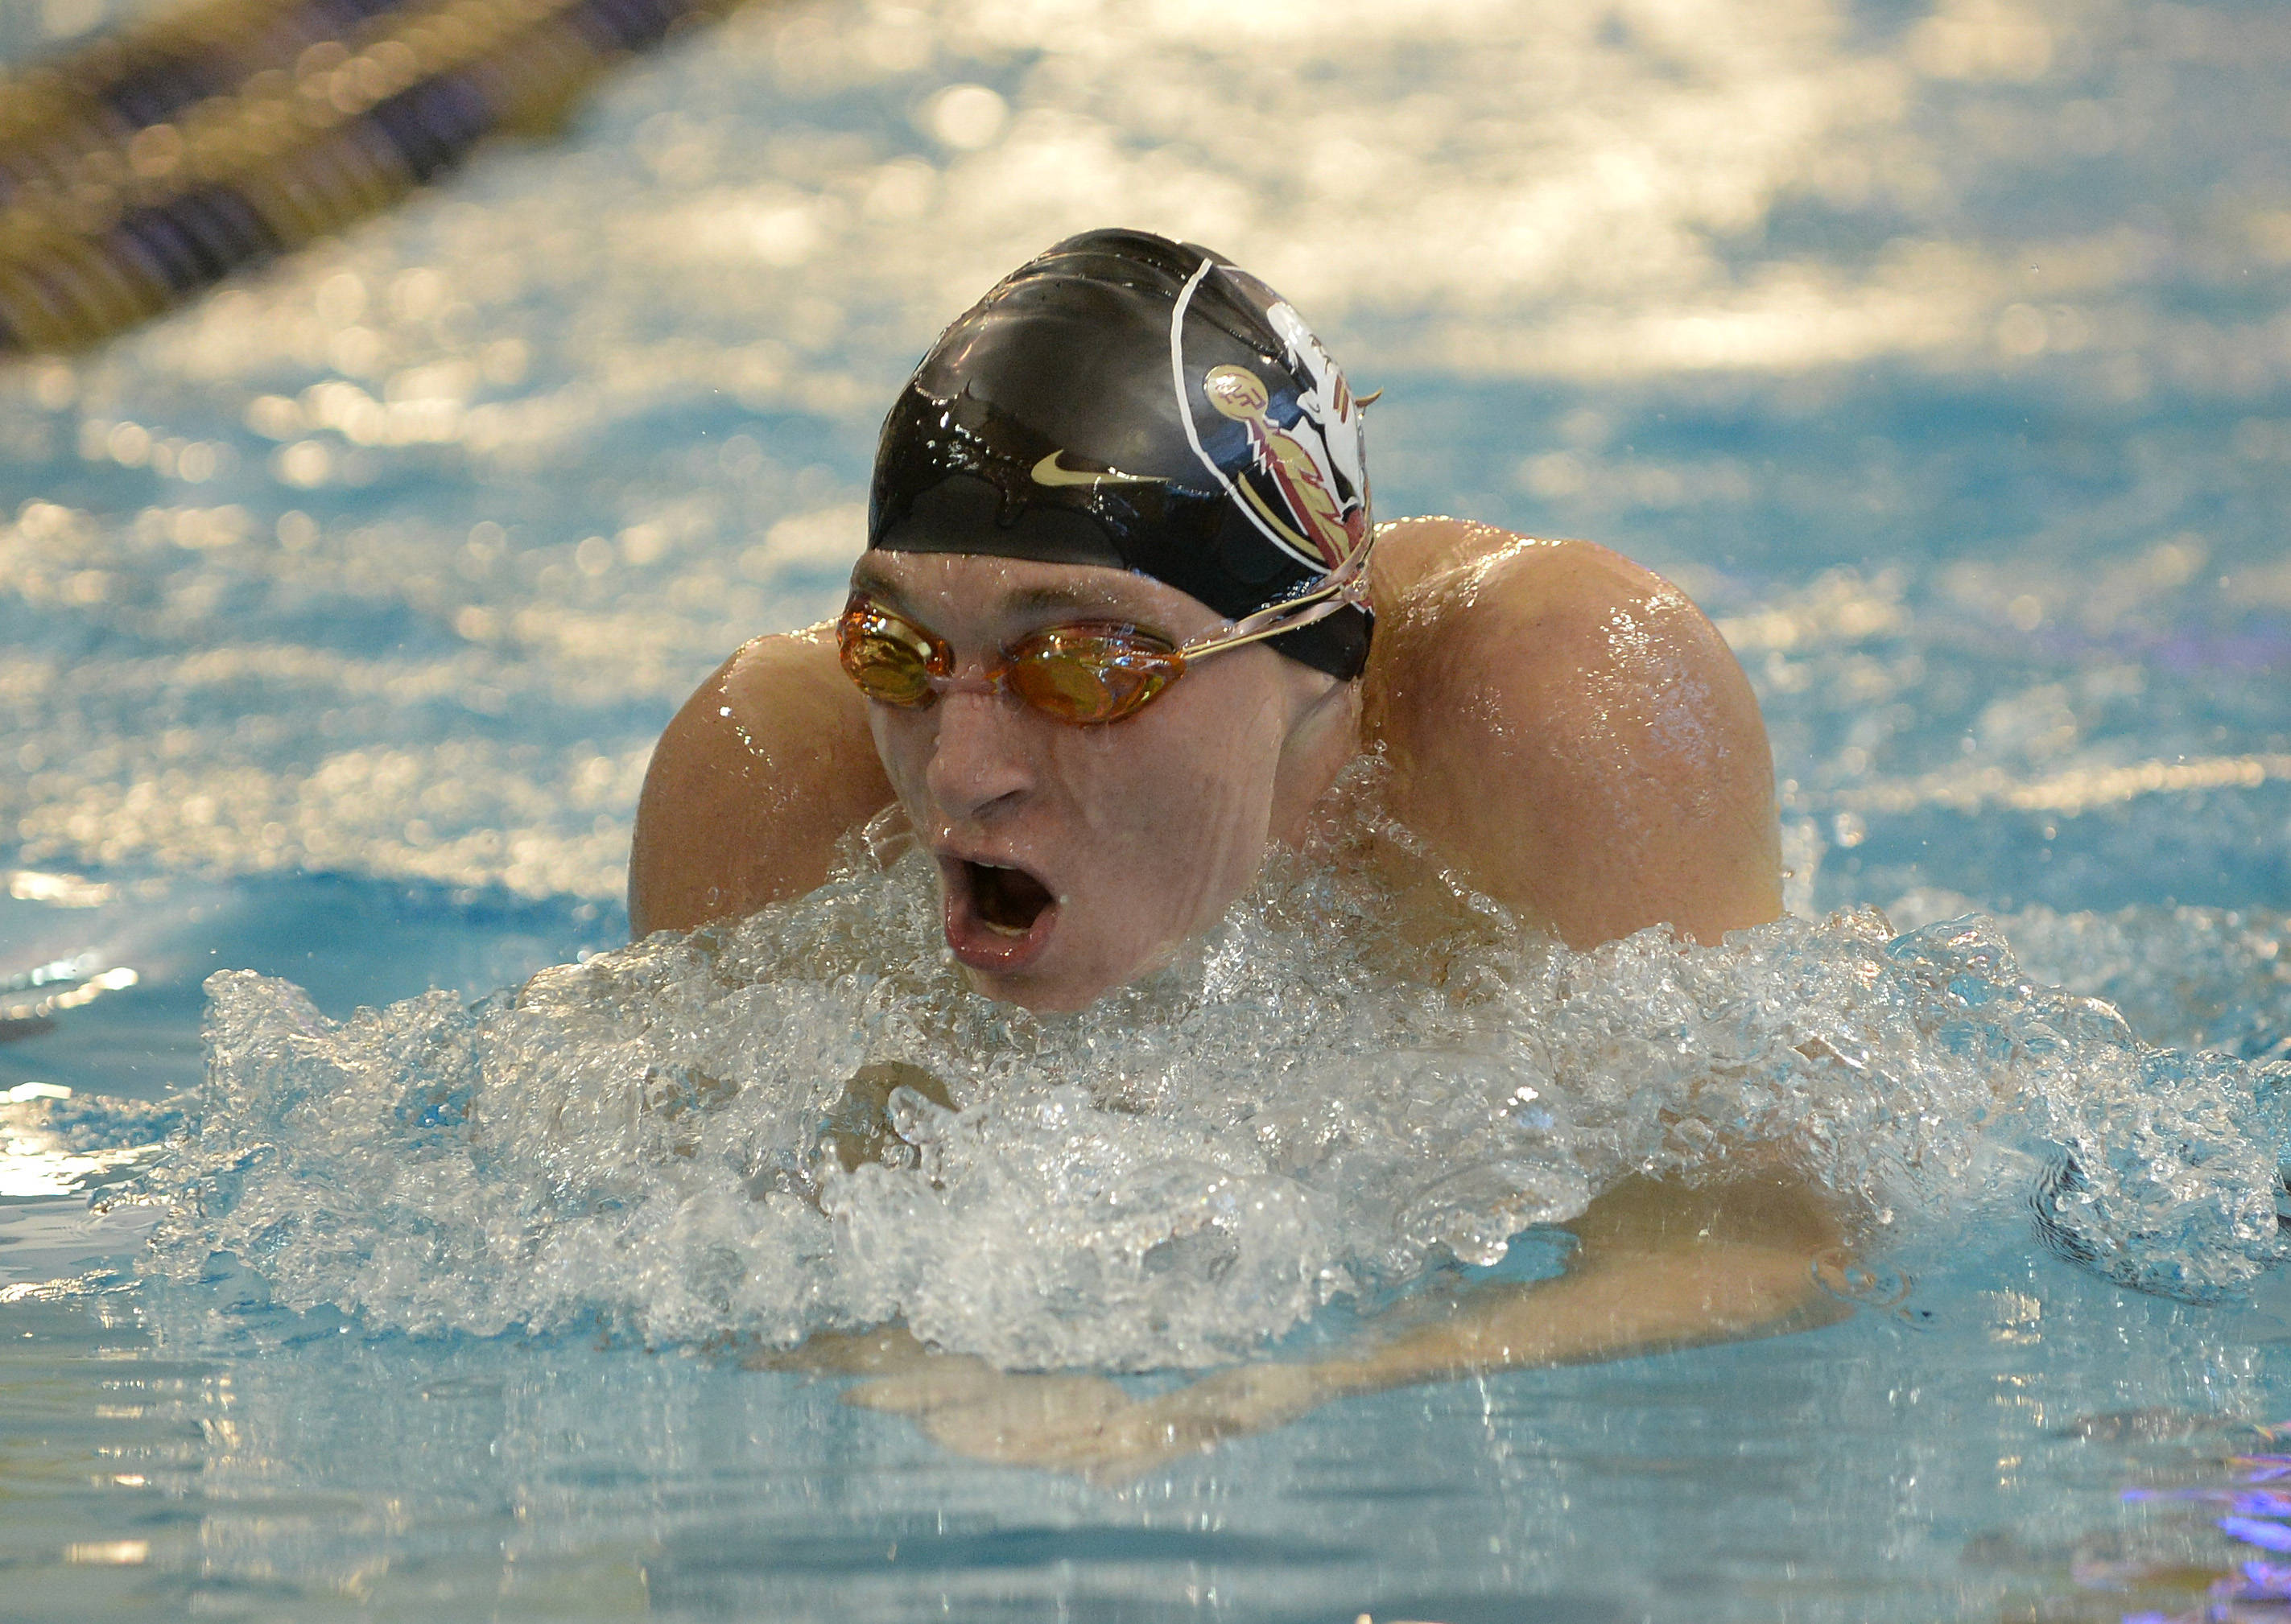 Kyle Doxtater in the 400 IM - Mitch White